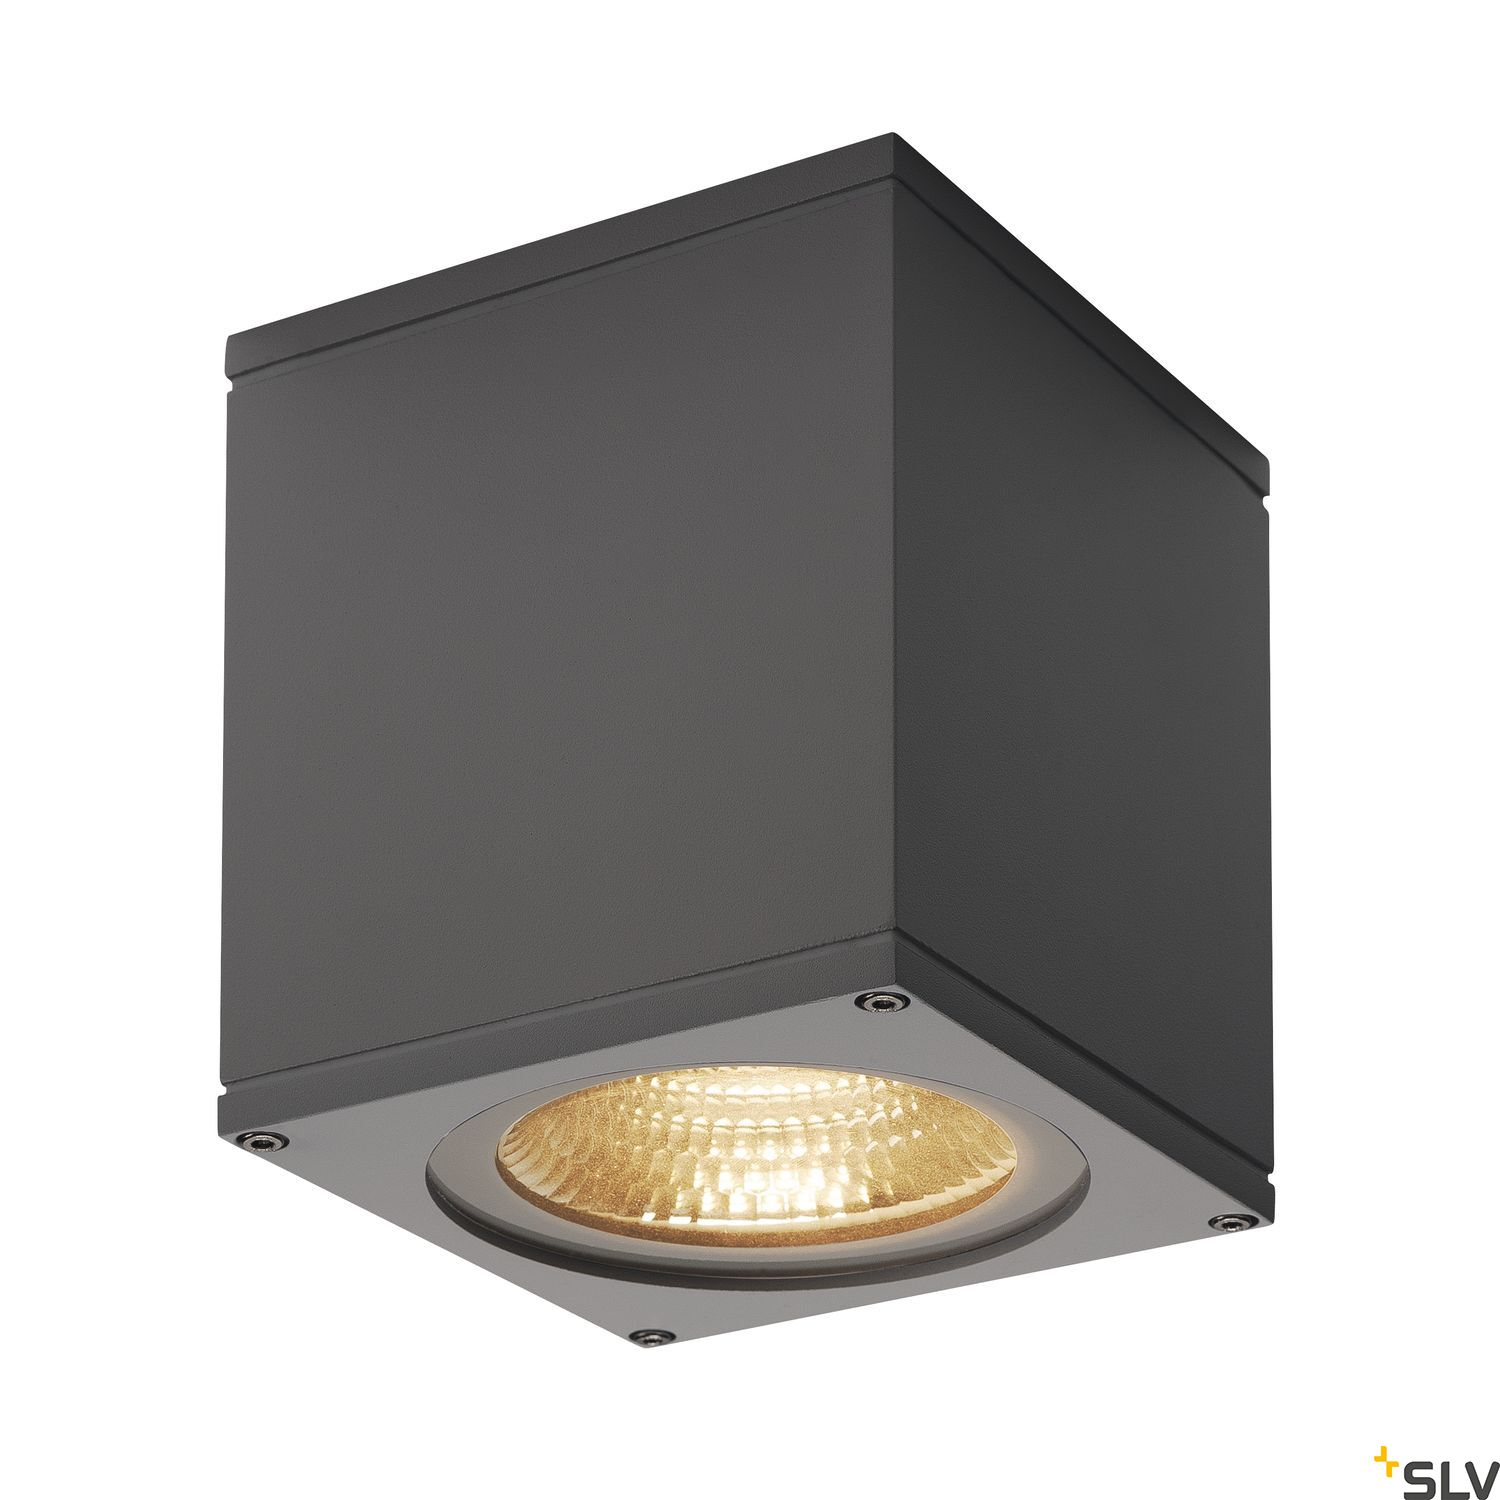 1 Stk BIG THEO CEILING, Outdoor Deckenleuchte, LED, anthrazit LI234535--